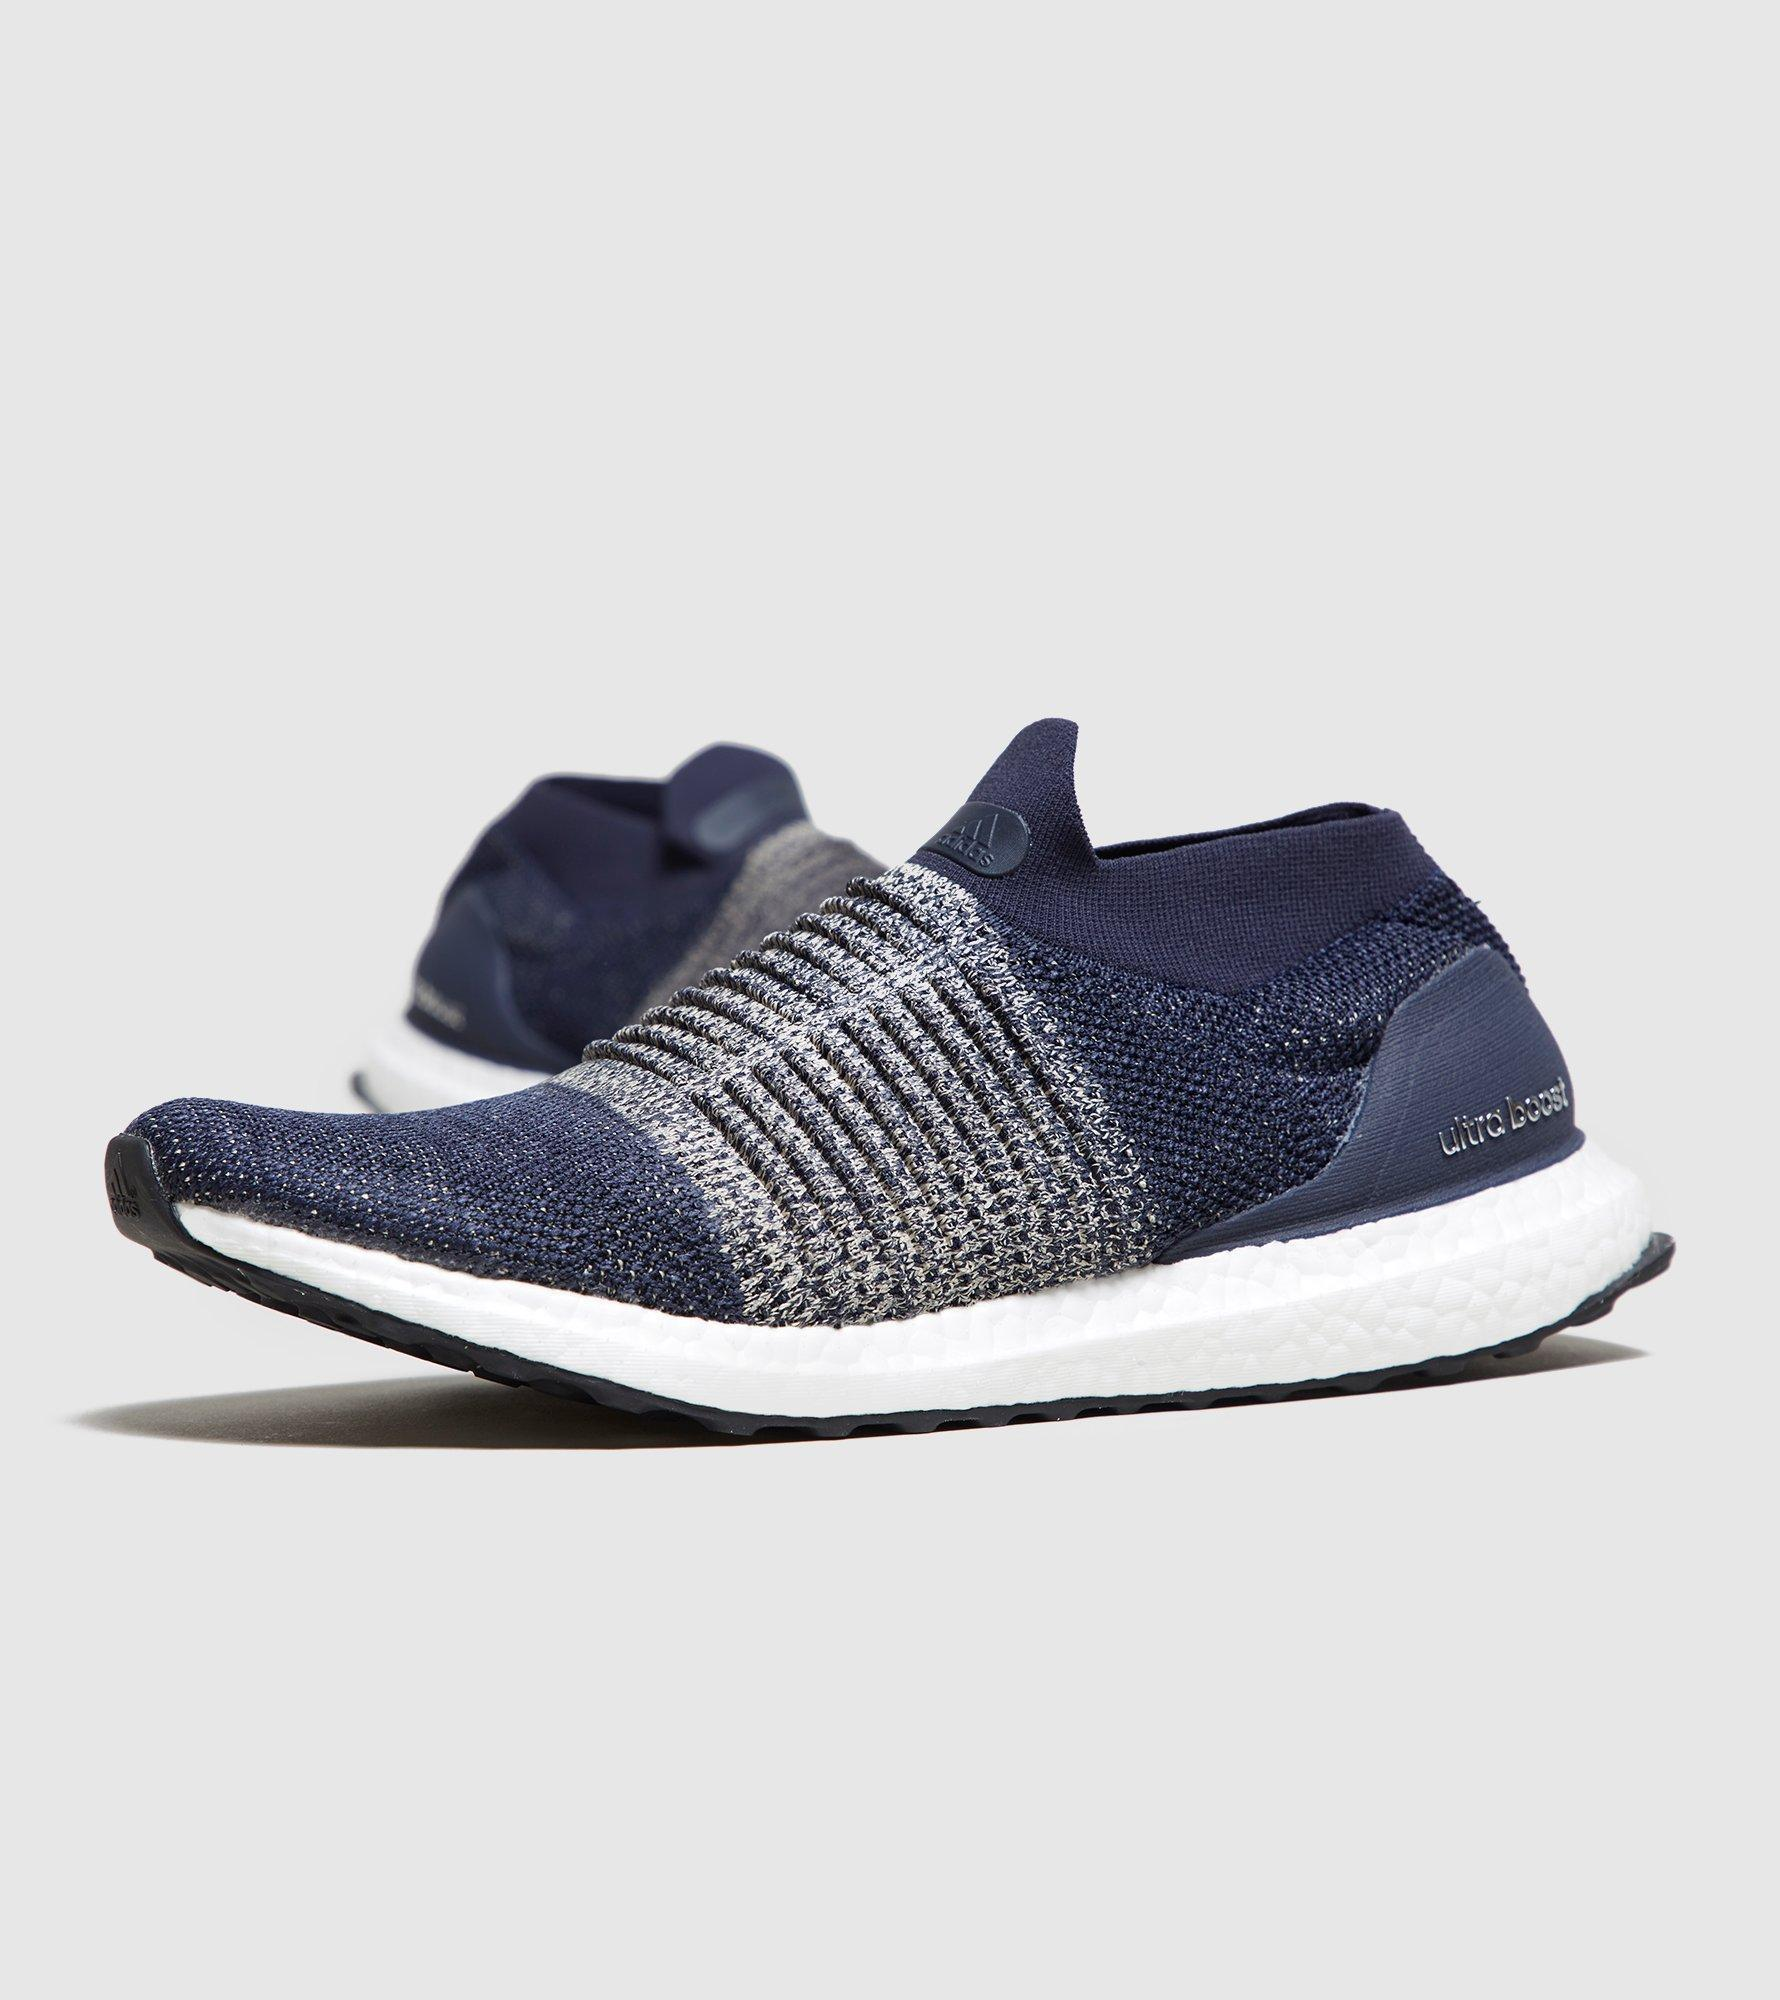 440081eda7ba8 where to buy gallery. previously sold at size mens adidas ultra boost bdc63  85328